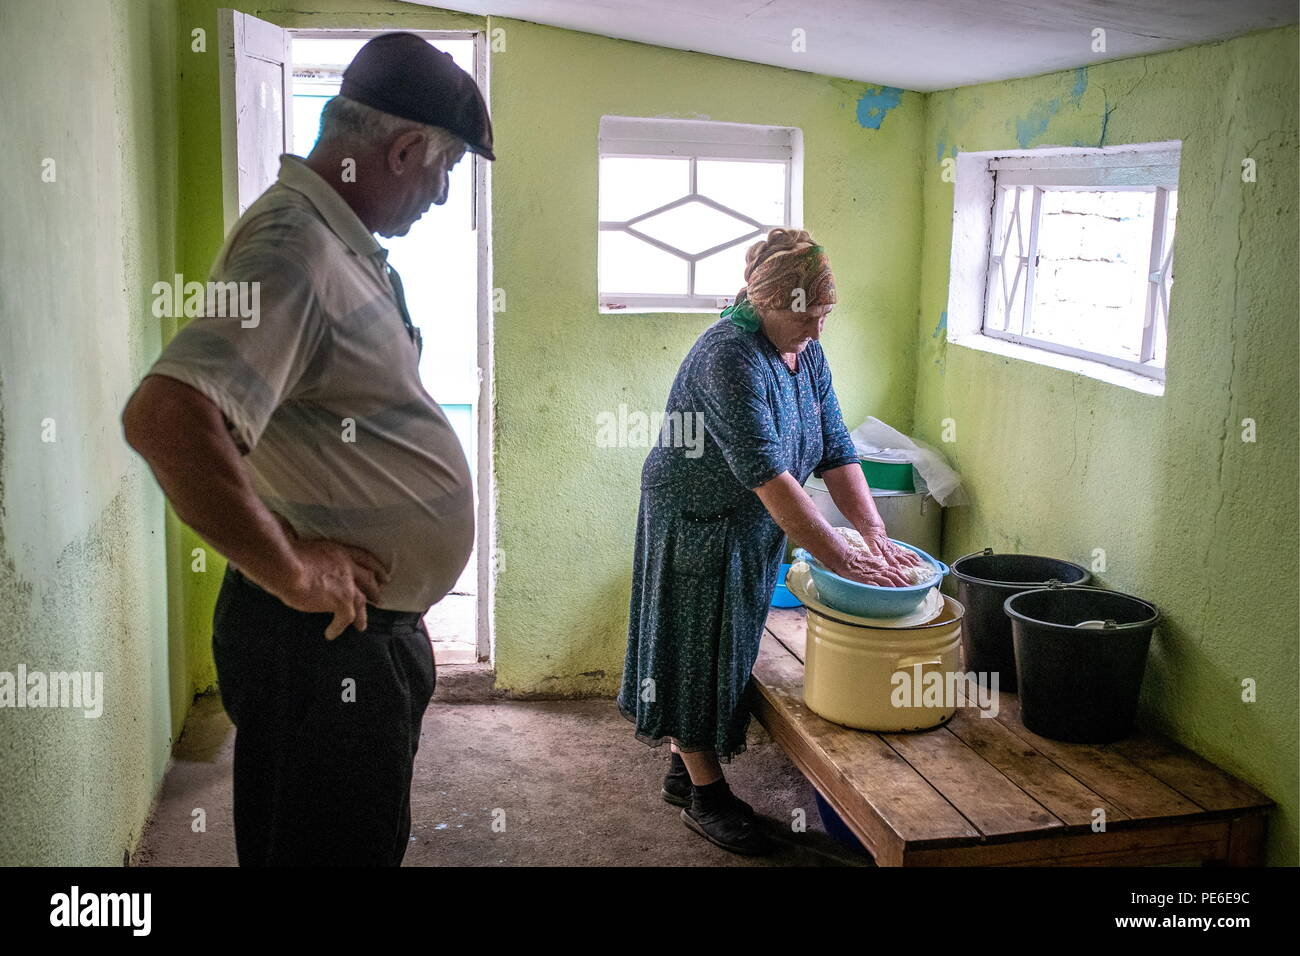 South Ossetia. 11th Aug, 2018. SOUTH OSSETIA - AUGUST 11, 2018: Margarita Madzigova, 63, and her husband Alikhan make home cheese in the village of Khetagurovo, Tskhinvali District, South Ossetia; they have been running a farm since their house was restored after the 2008 South Ossetian-Georgian military conflict. Sergei Bobylev/TASS Credit: ITAR-TASS News Agency/Alamy Live News - Stock Image